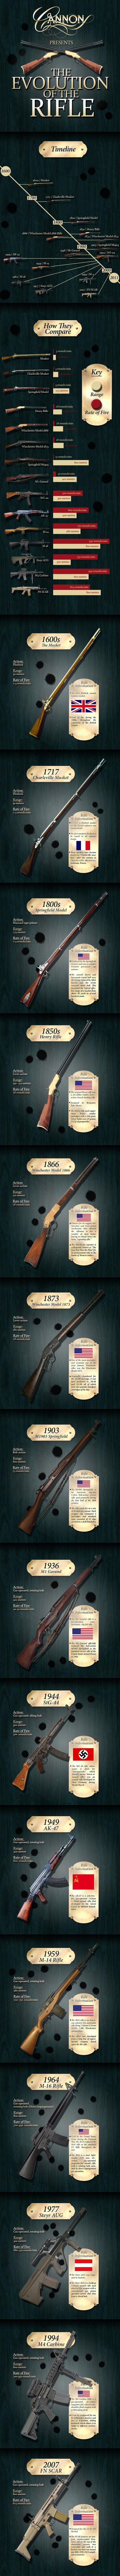 The Evolution of the Rifle: From Muskets to the Assault Rifle: